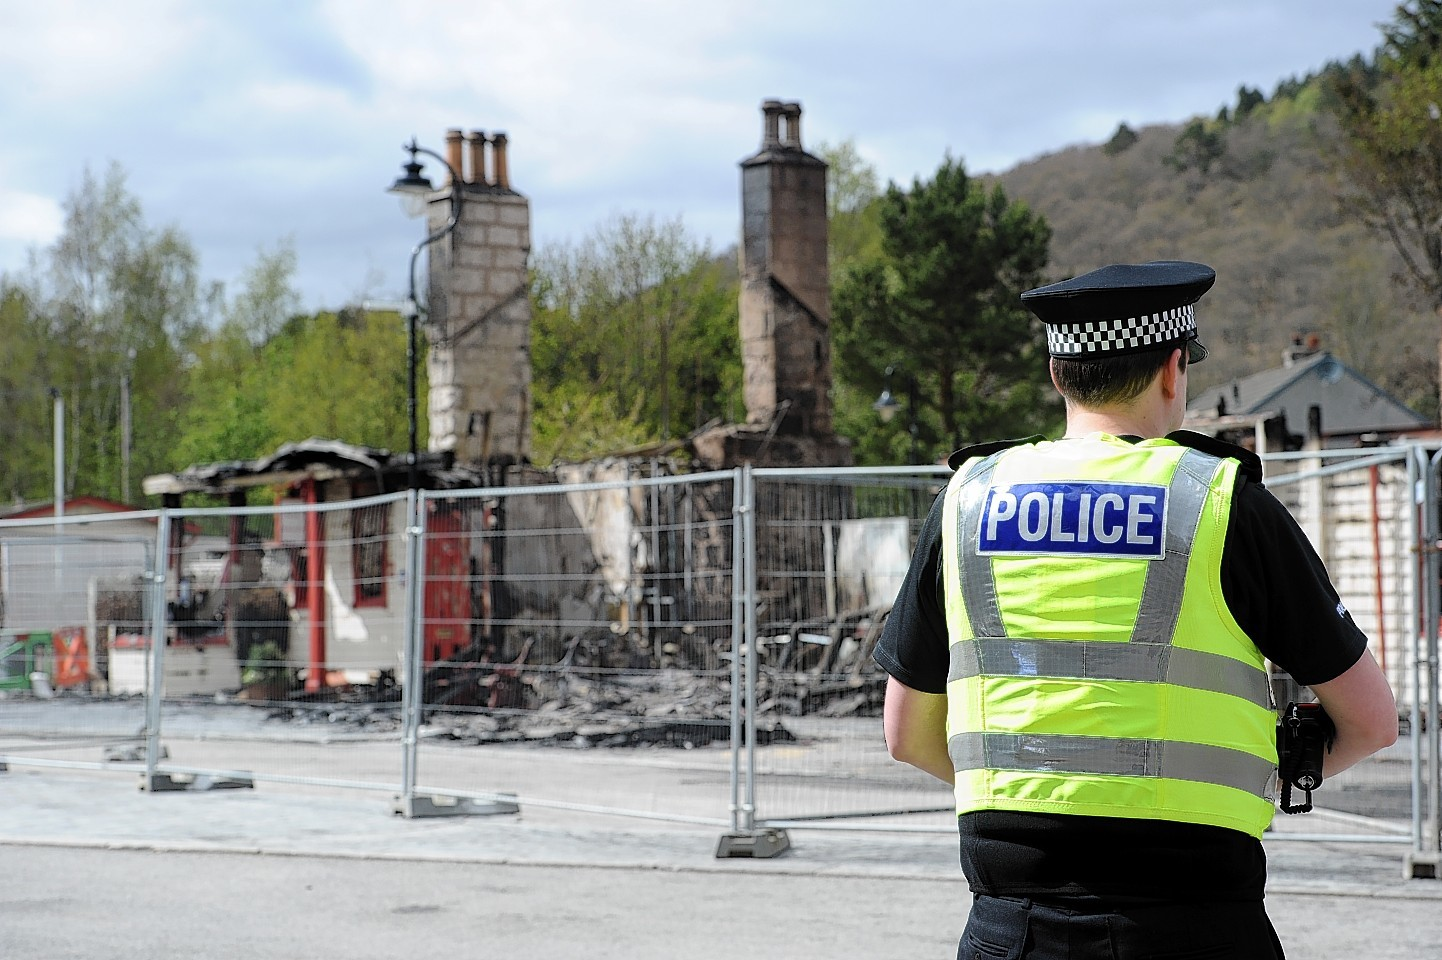 Police at the scene of the fire at Old Royal Station, Ballater